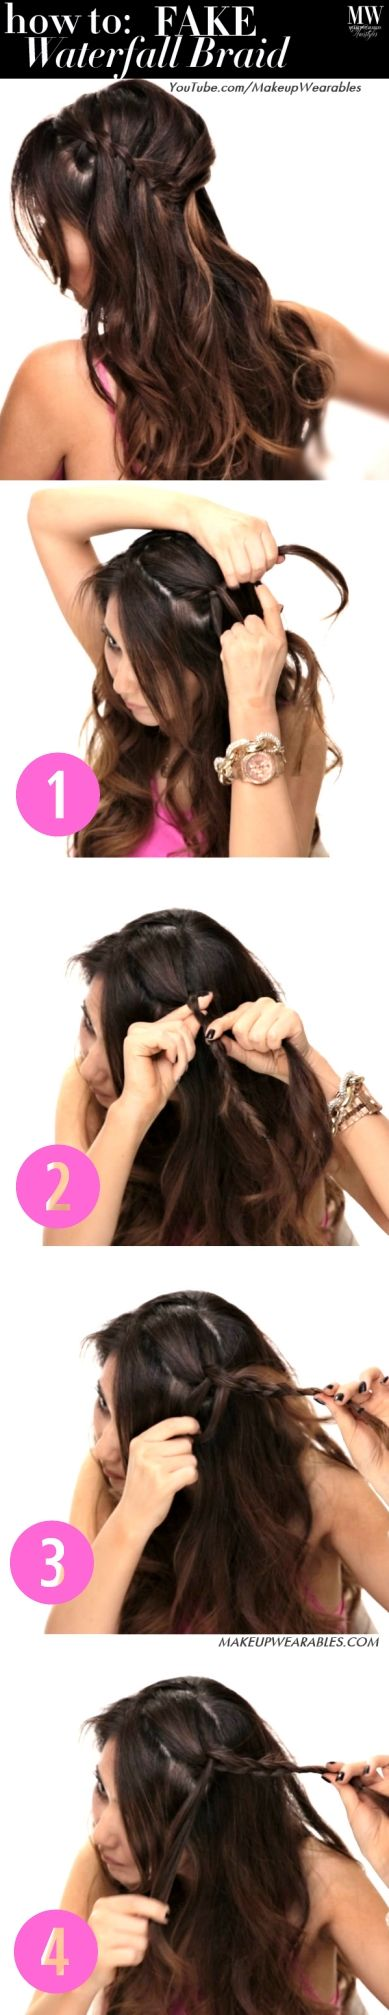 How to do a fake waterfall braid hairstyle - easy hairstyles for long hair tutorial